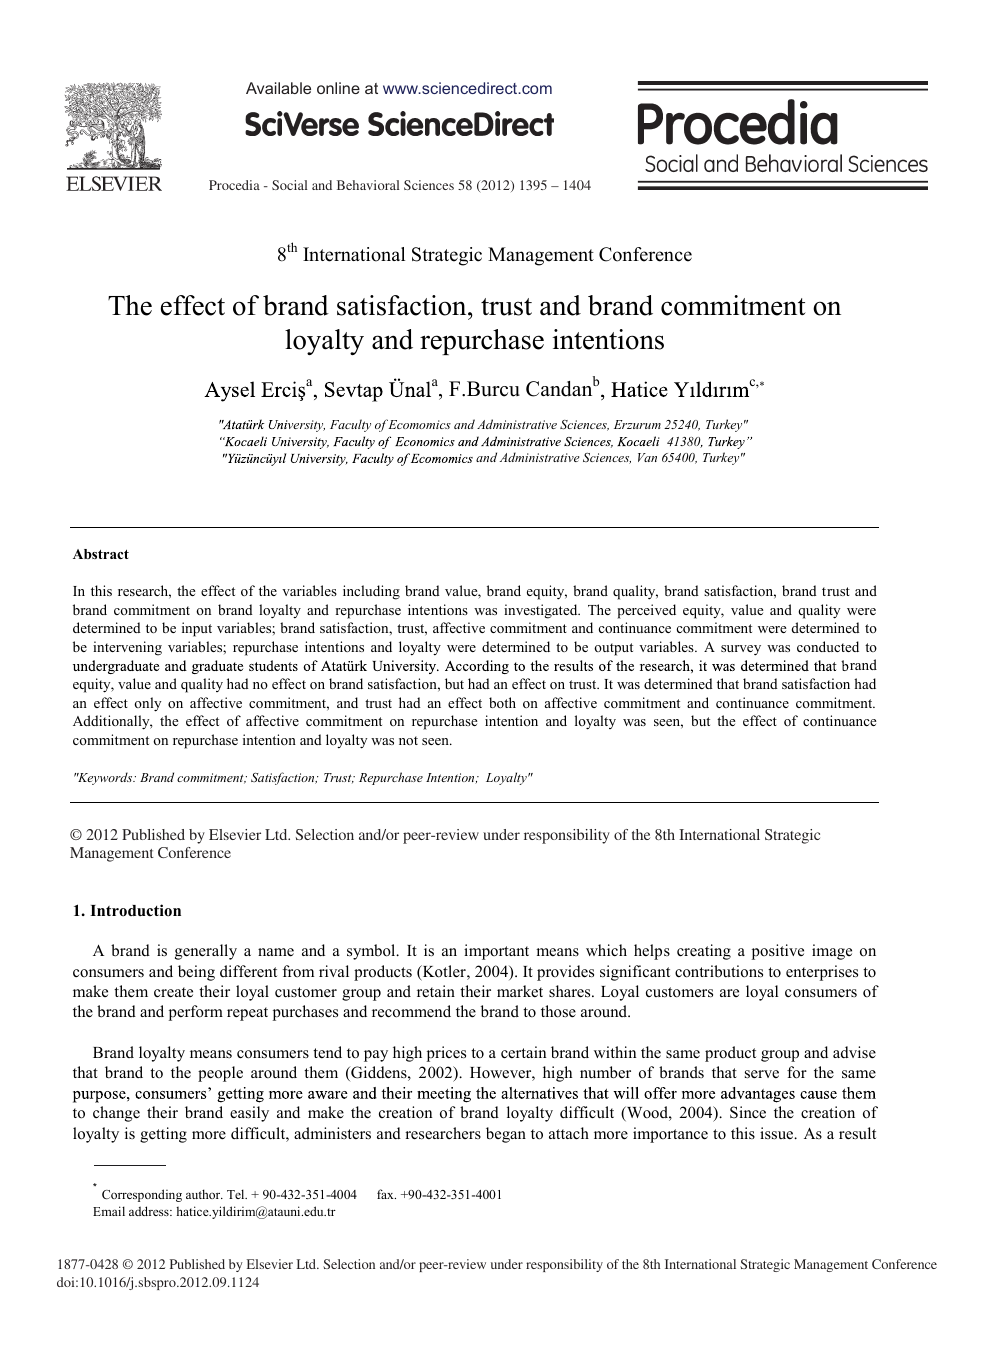 The Effect Of Brand Satisfaction Trust And Brand Commitment On